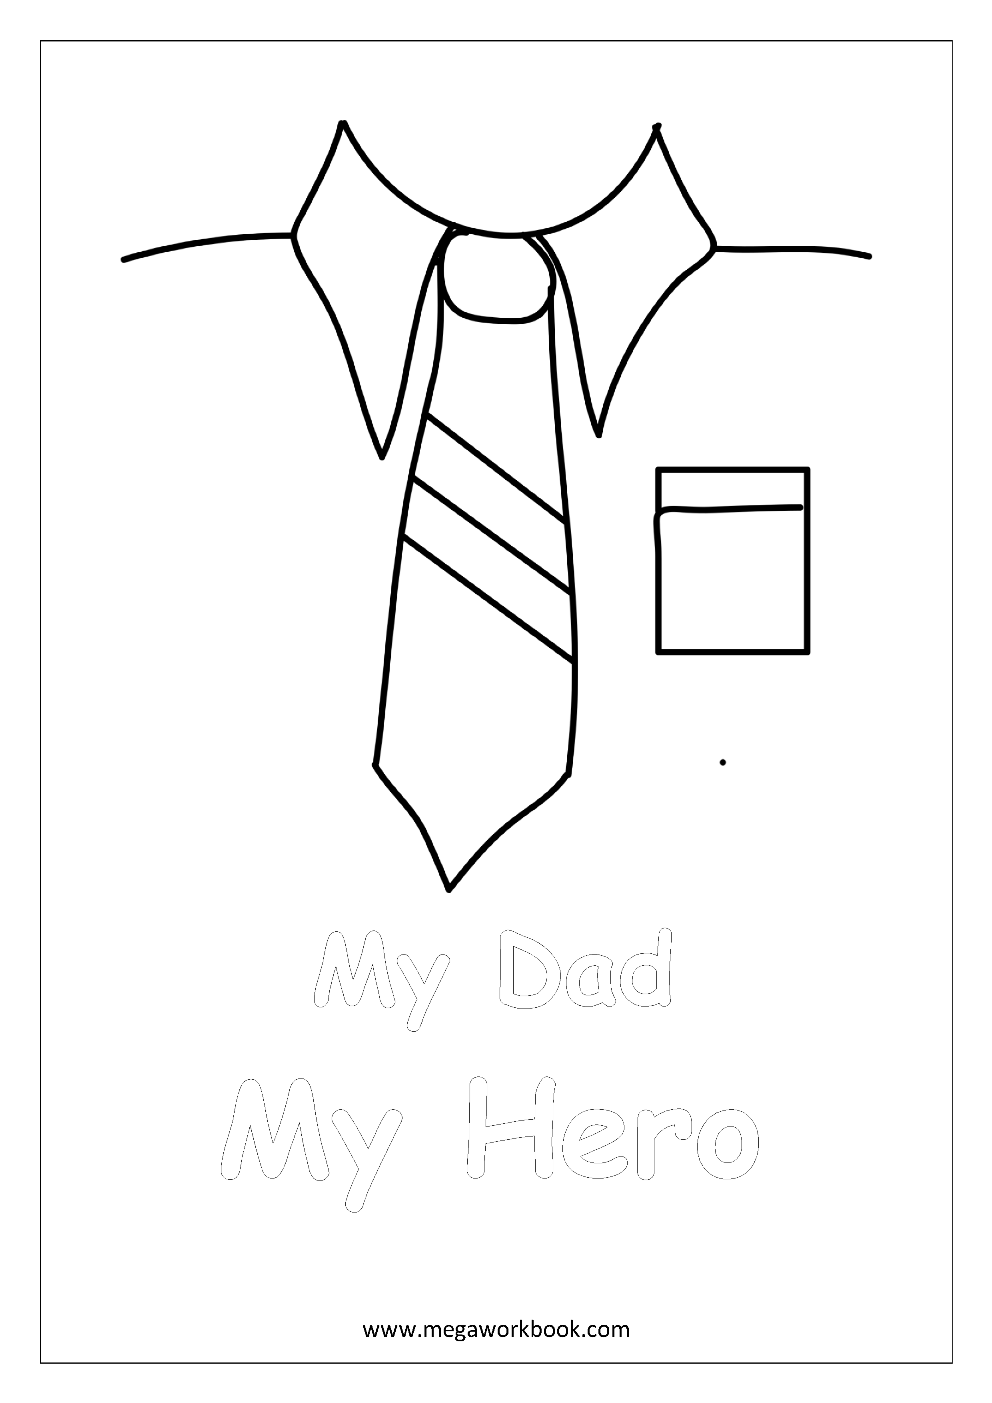 Free Coloring Sheets - Father\'s Day - MegaWorkbook